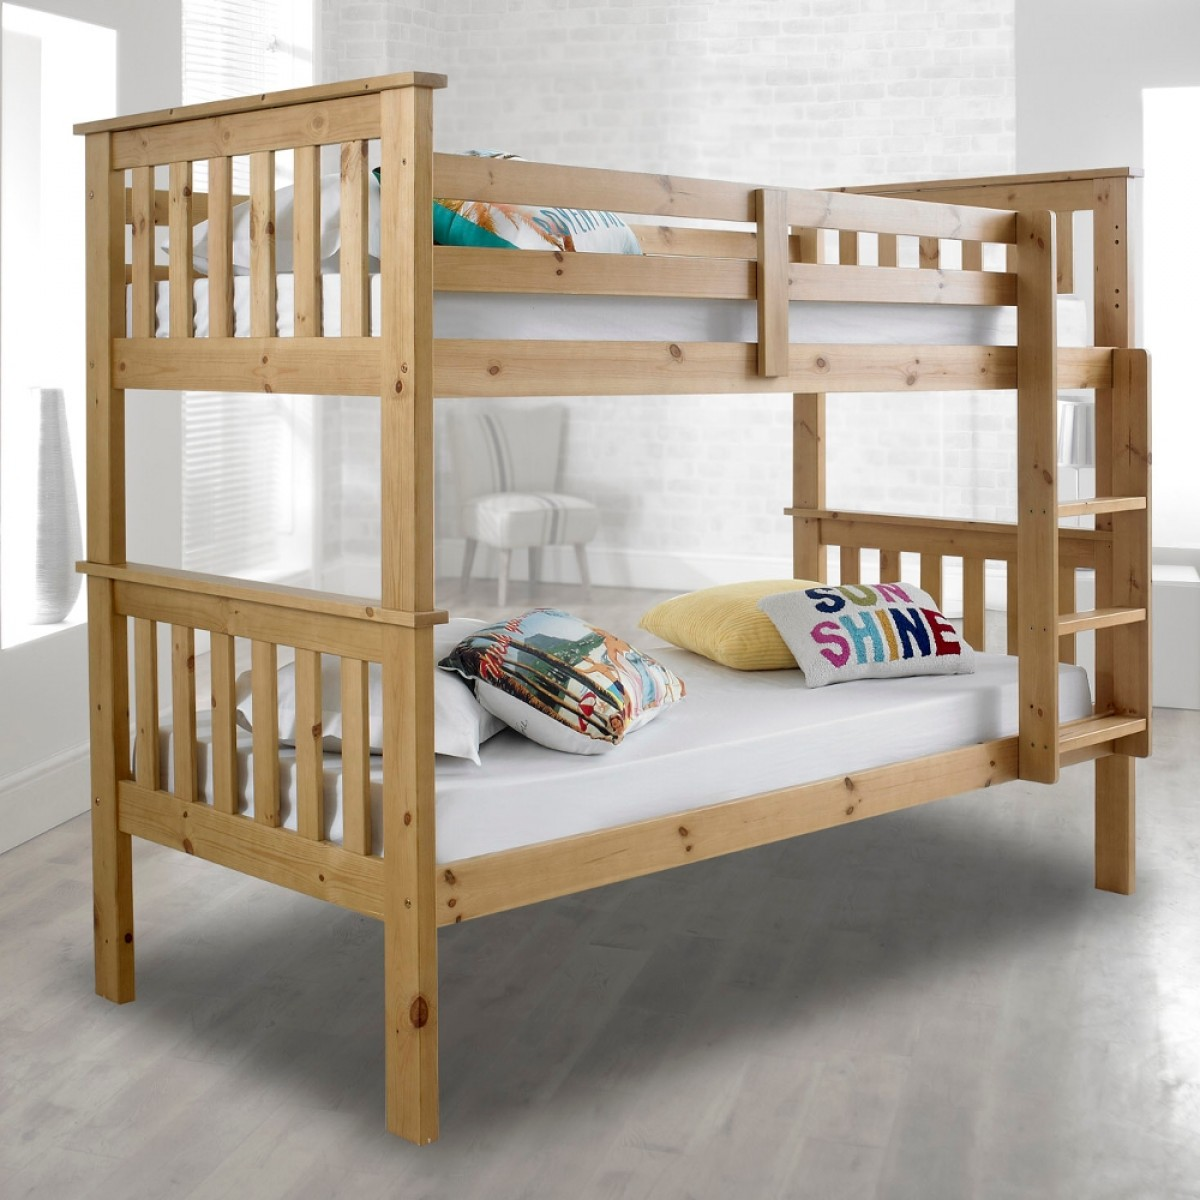 Atlantis solid pine wooden bunk bed for Strong wooden beds